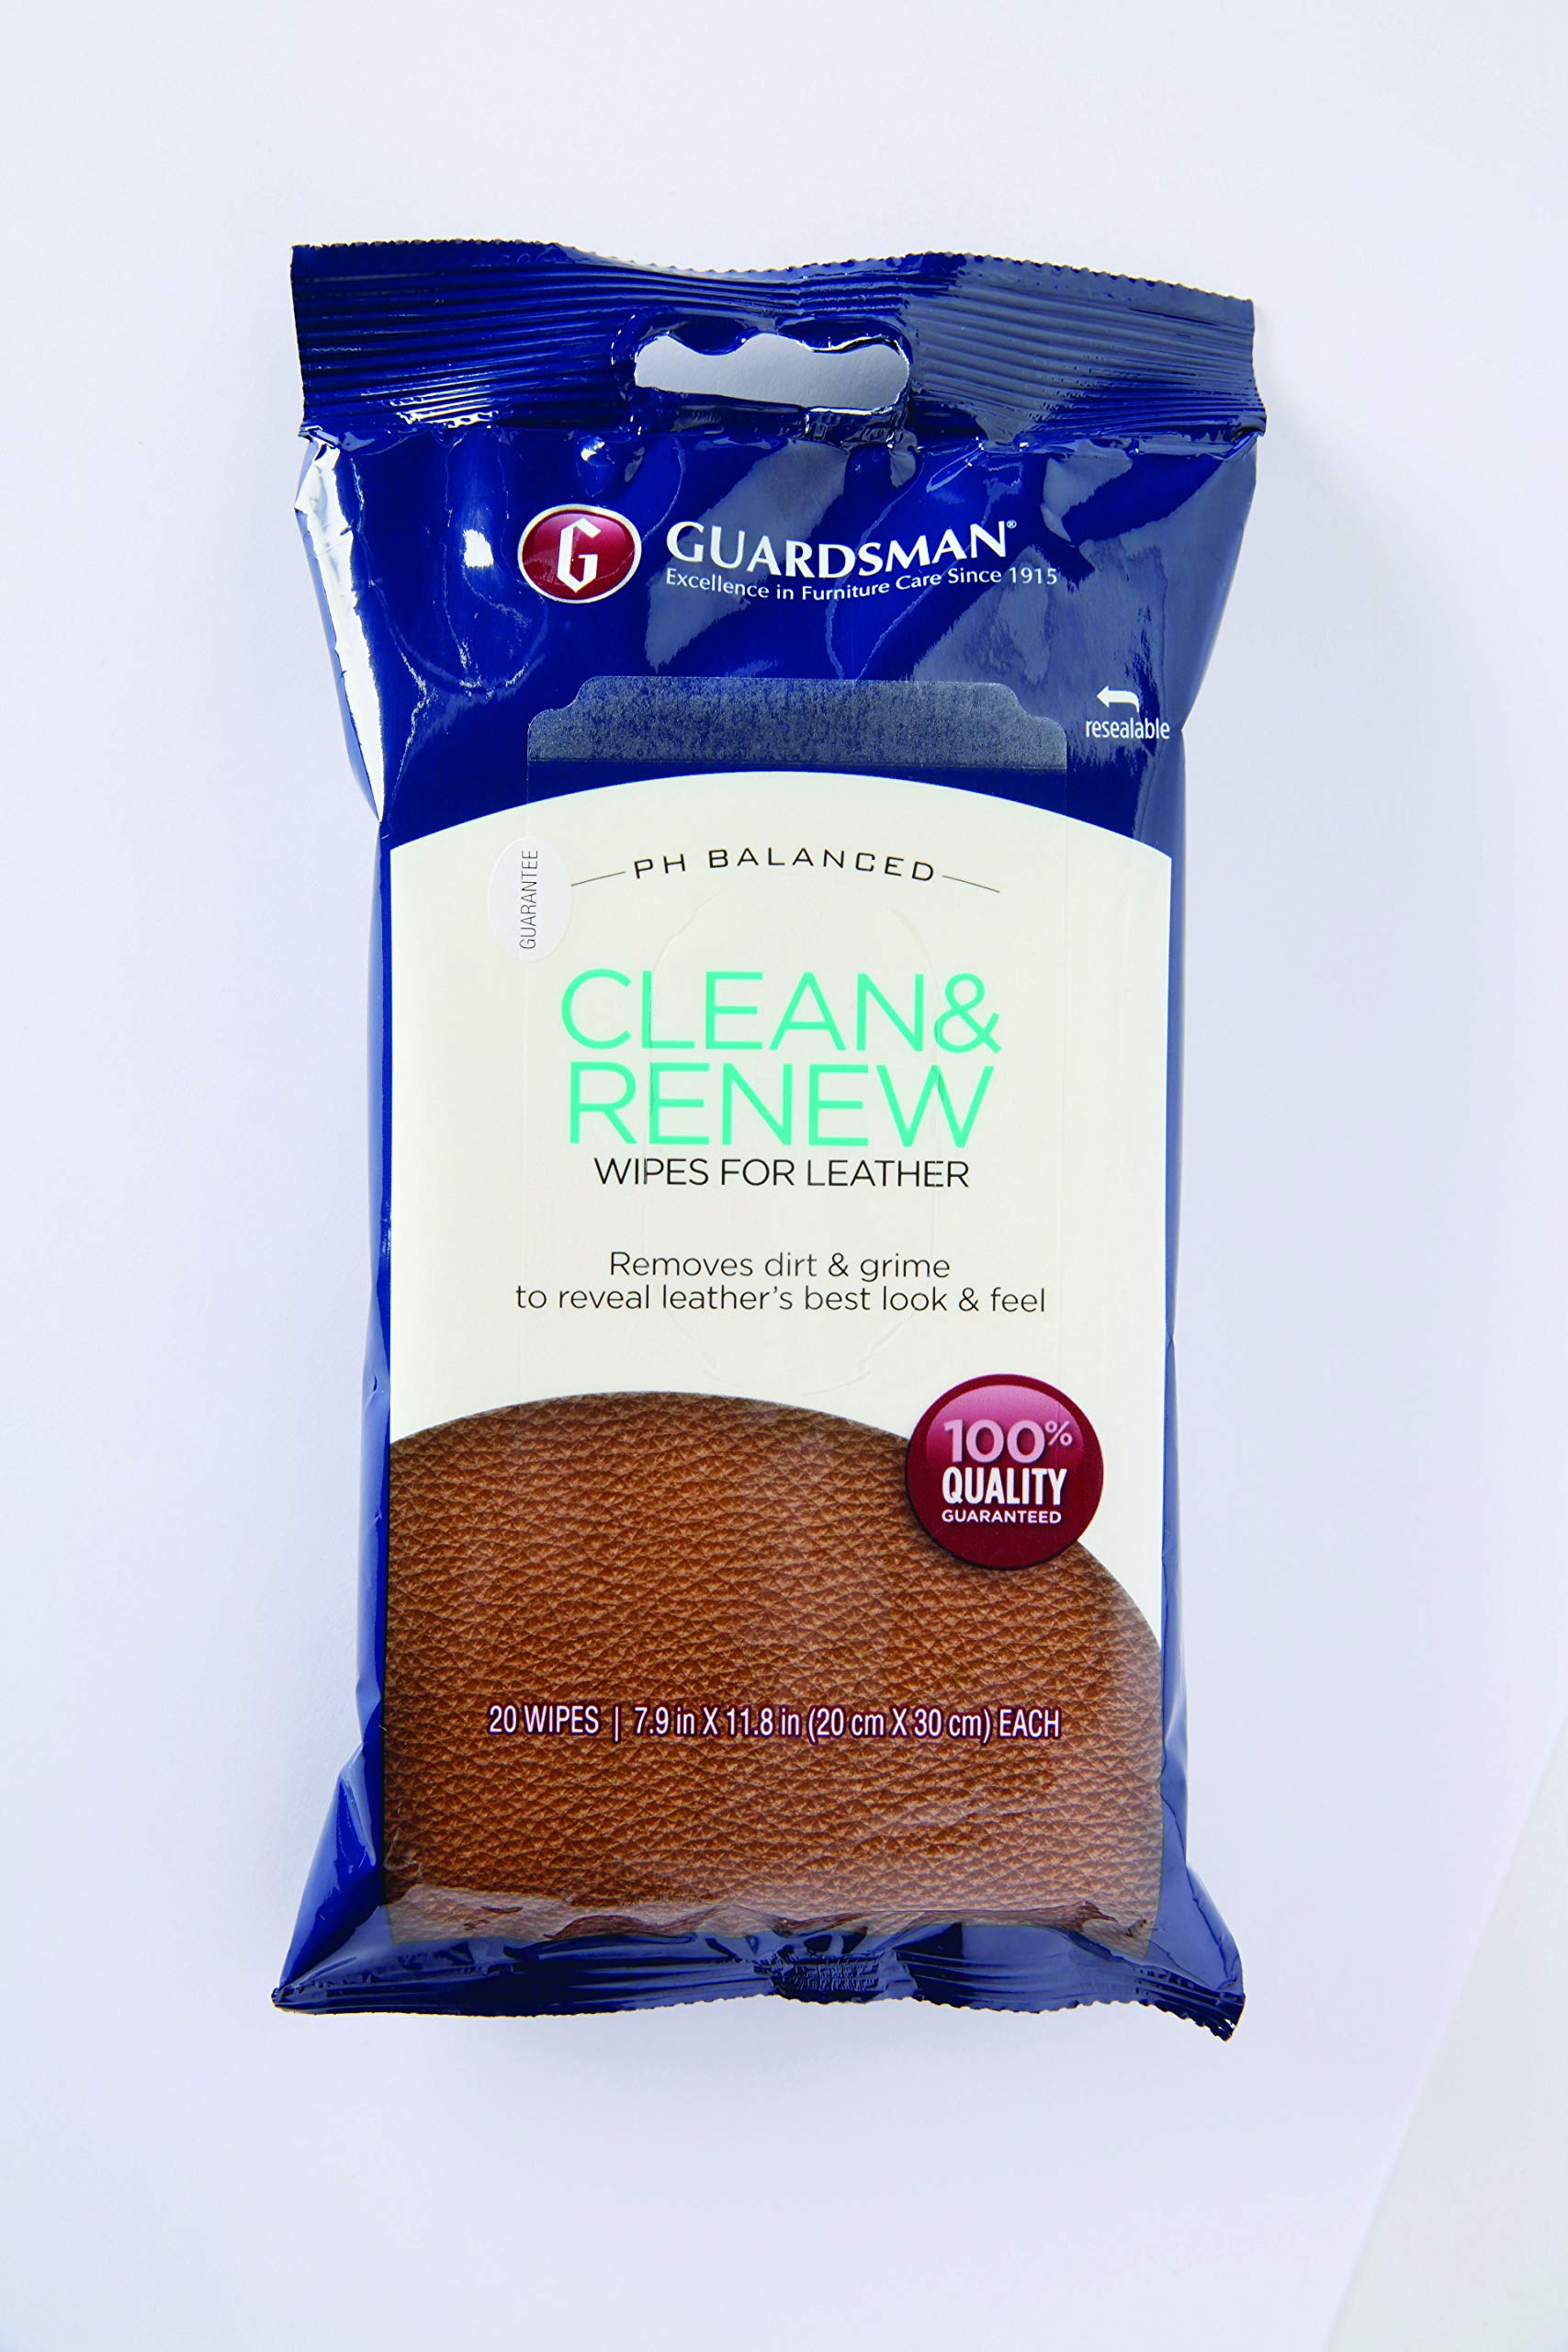 Guardsman 470200 Clean & Renew Wipes Removes Dirt and Grime, for Leather Furniture & Car Interiors, 20 Count